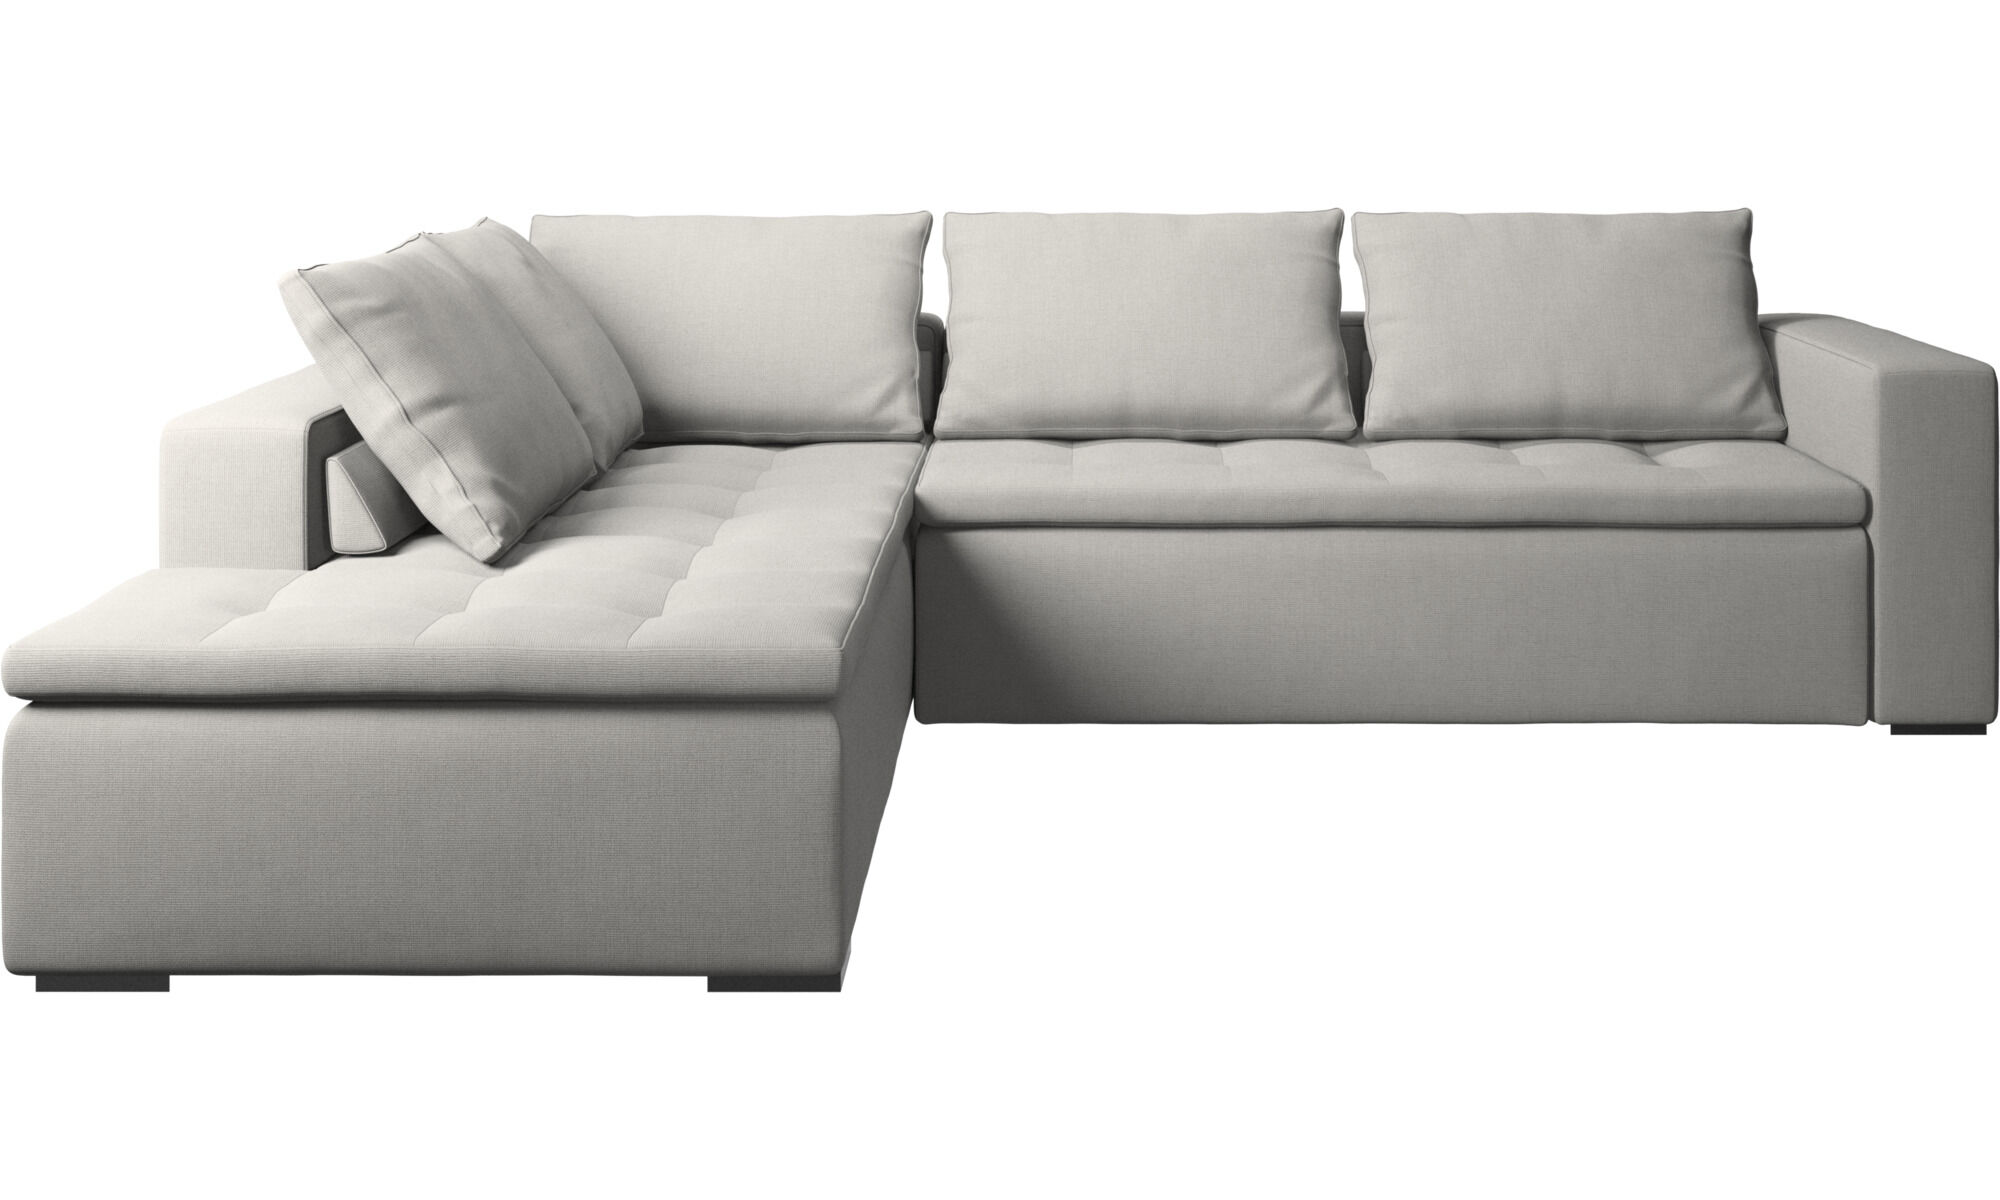 Sofas With Open End   Mezzo Corner Sofa With Lounging Unit   Gray   Fabric